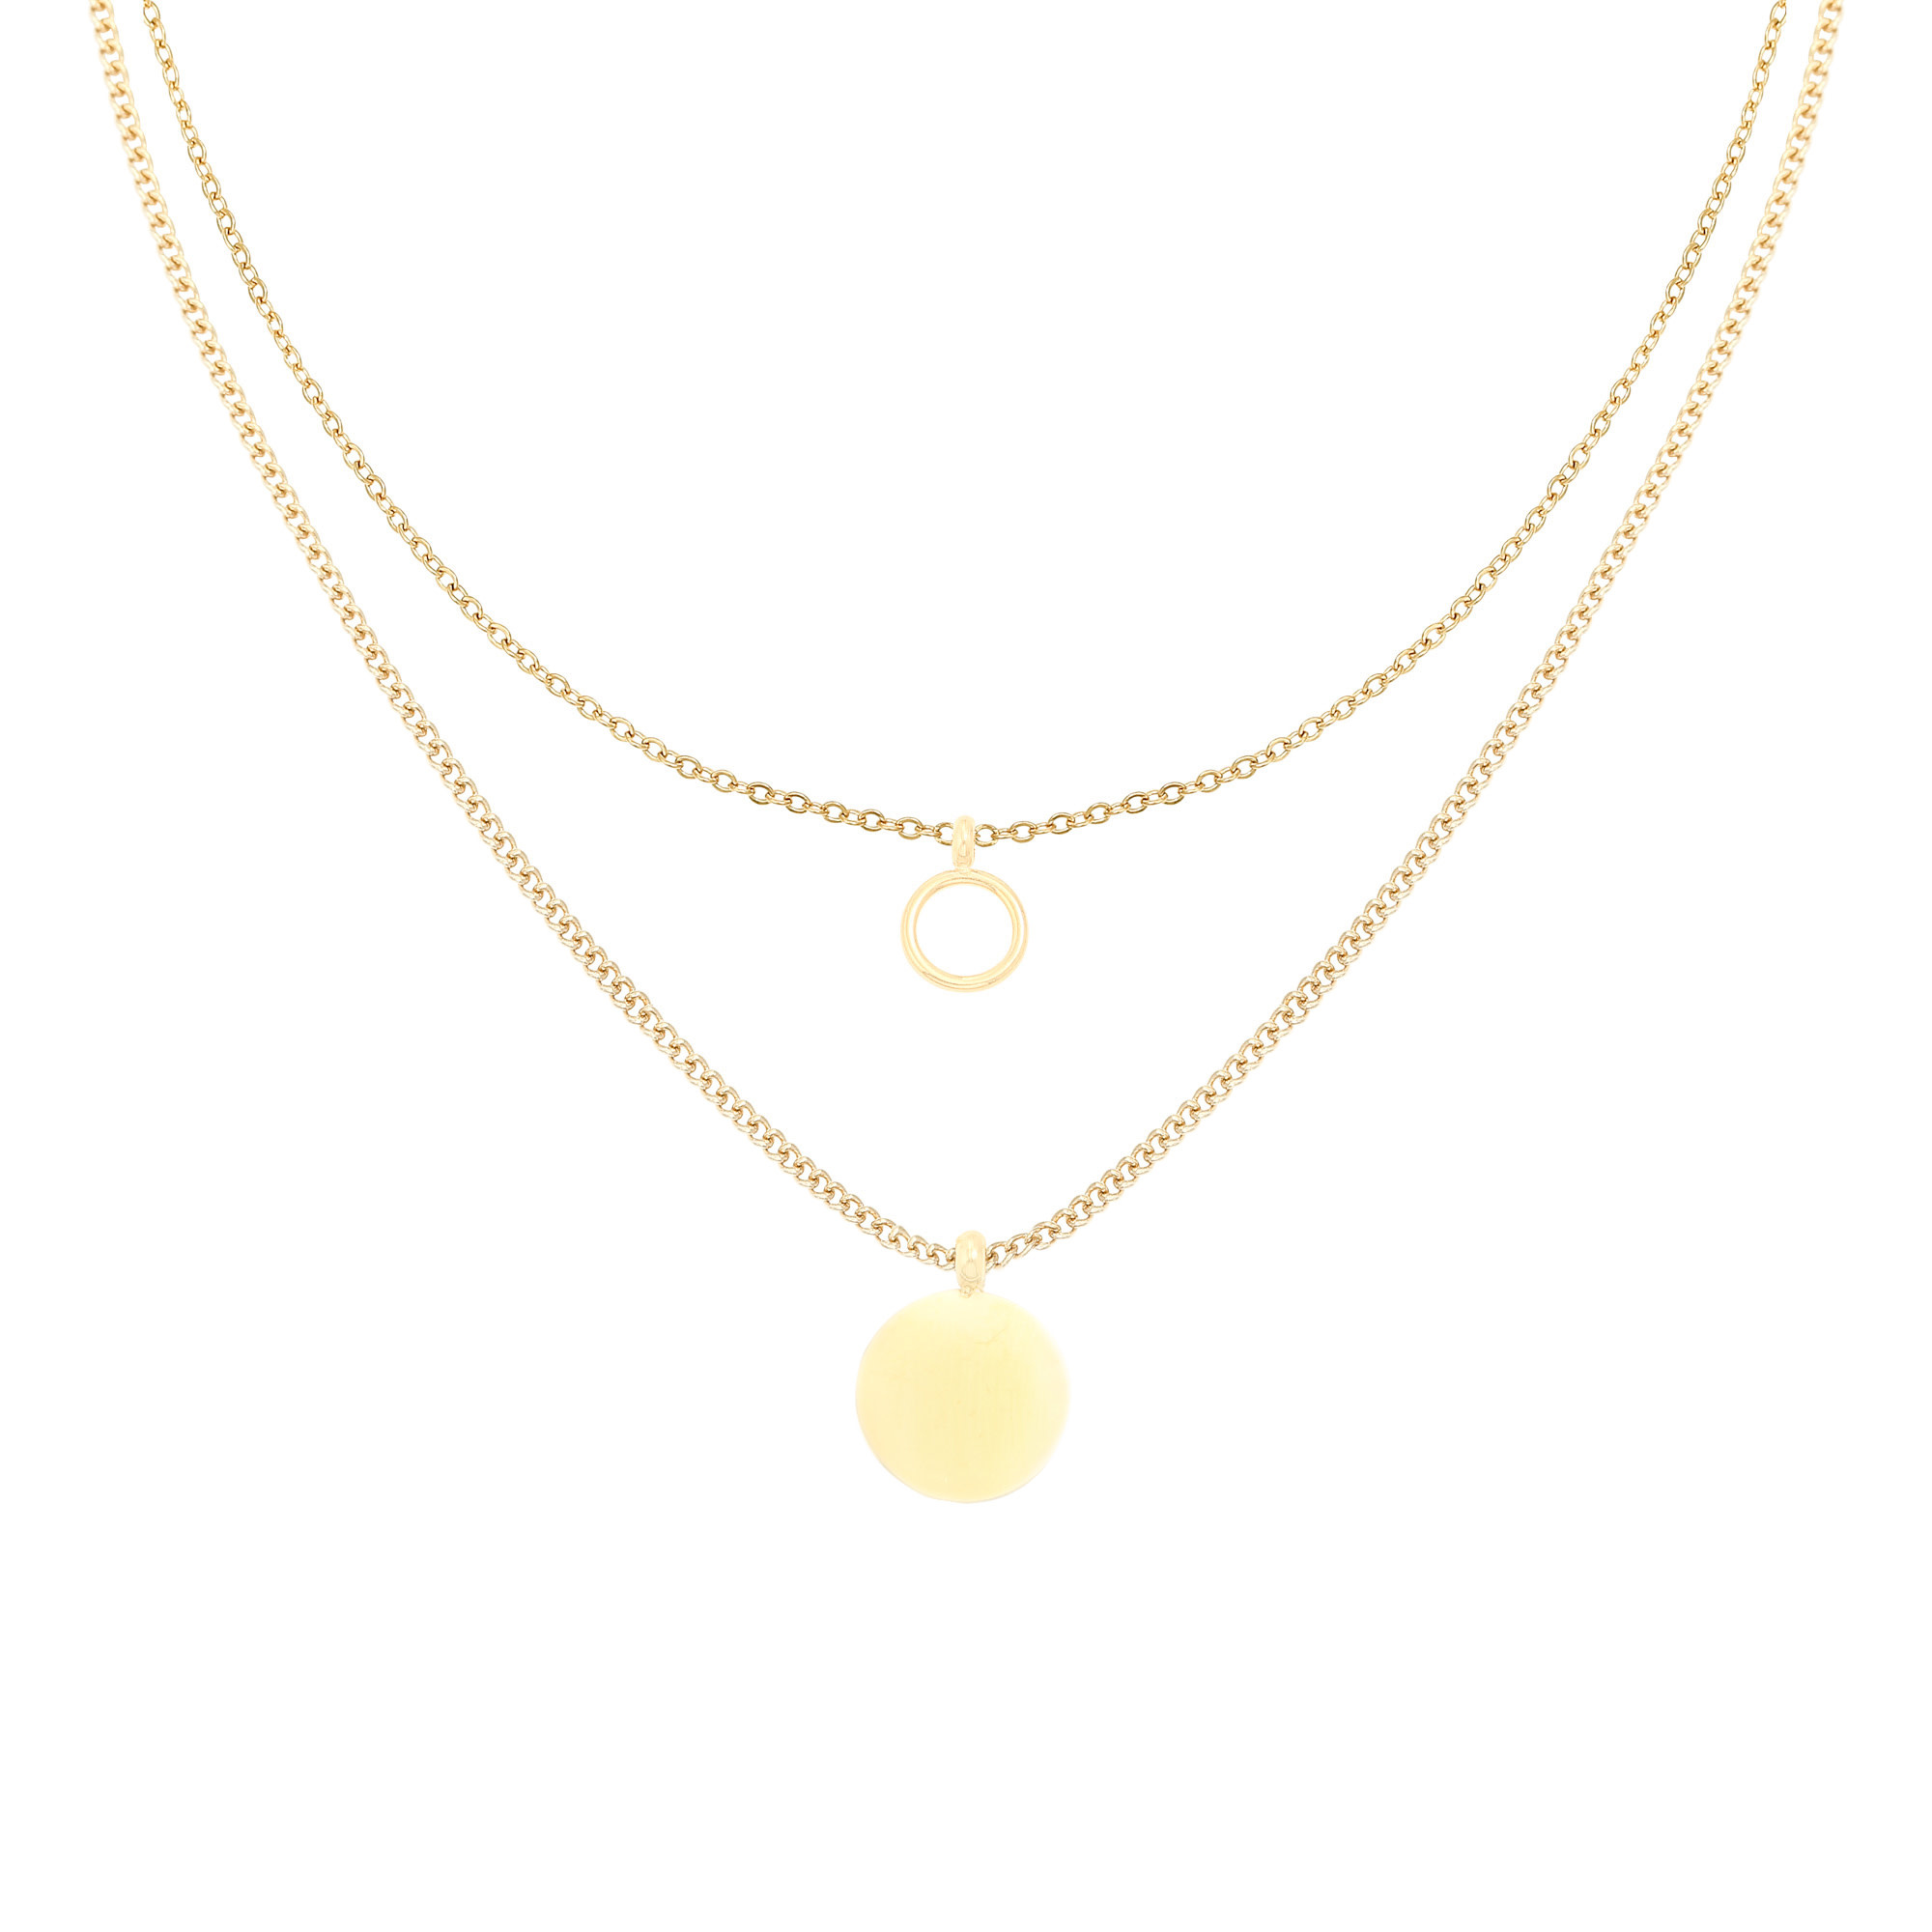 With love Necklace Complement gold